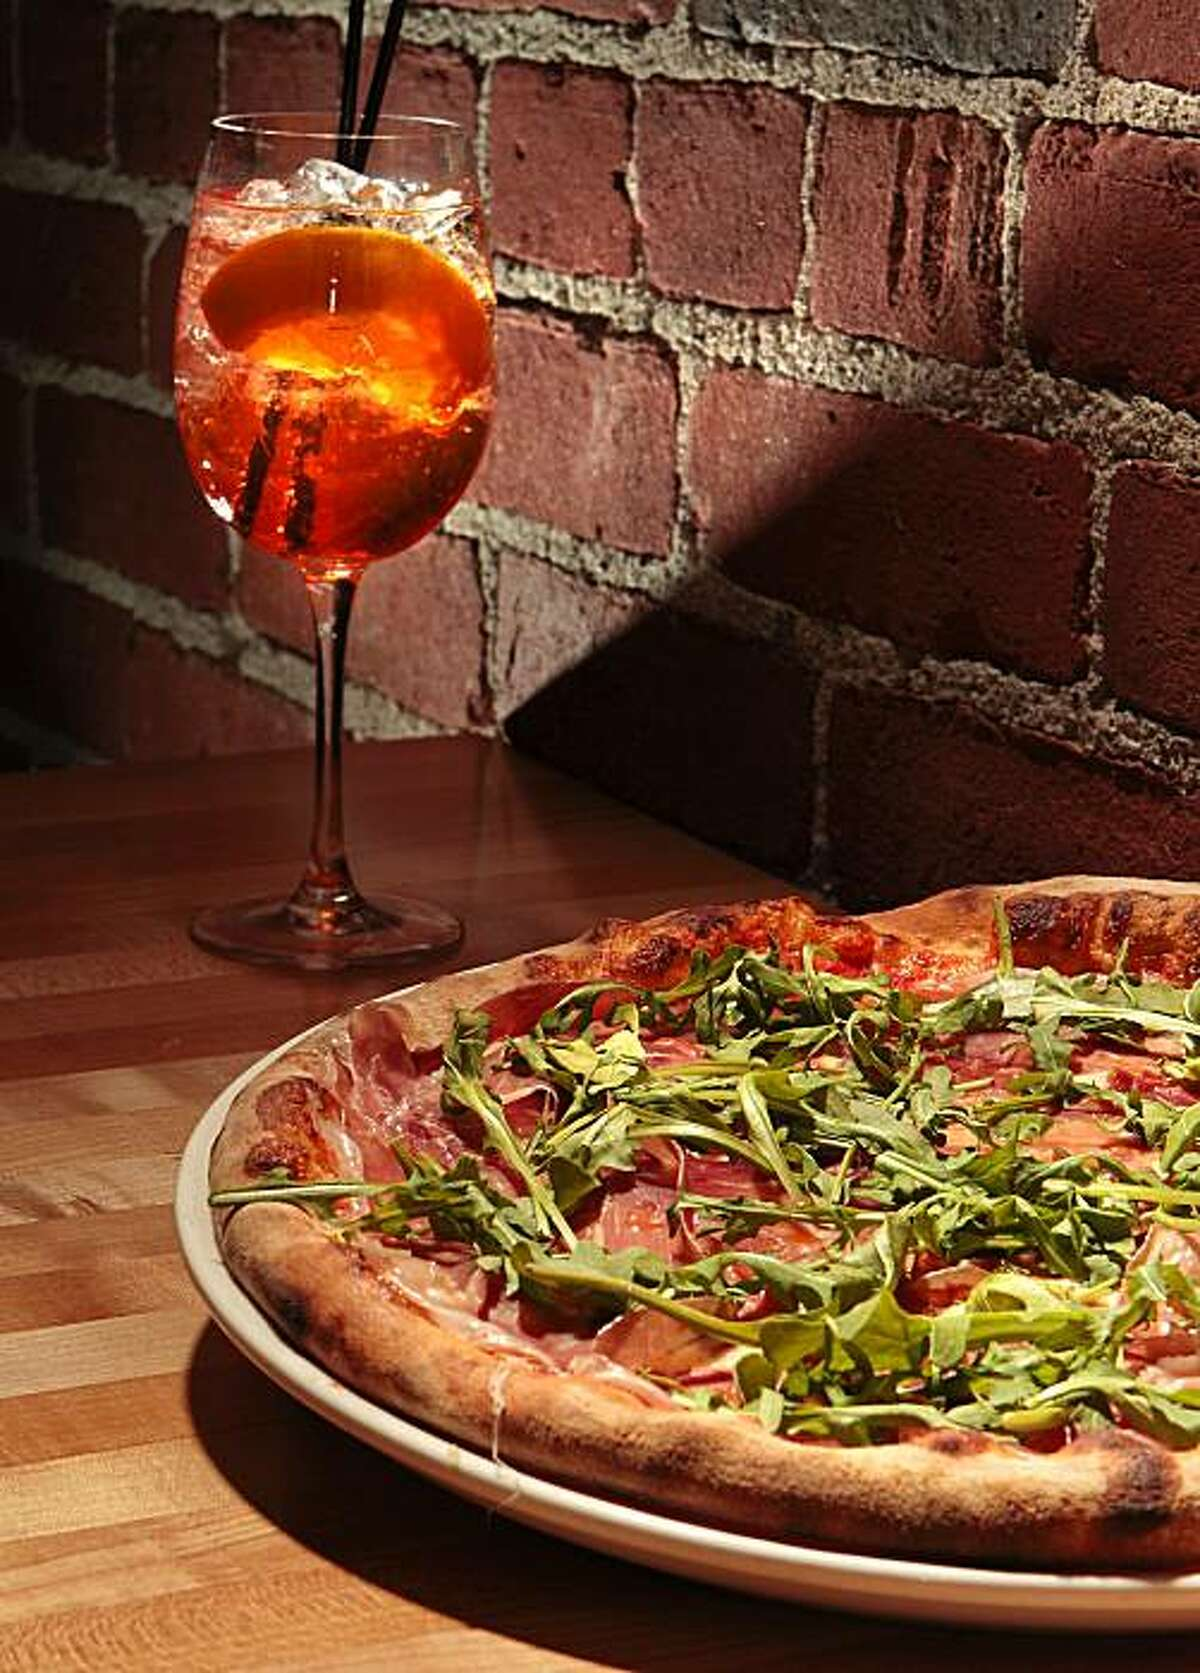 """The """"Sonja"""" pizza with """"Spritz"""", an Italian aperitif, at Diavola Pizzeria in Geyserville, Calif., is seen on Sunday, January 2, 2011."""